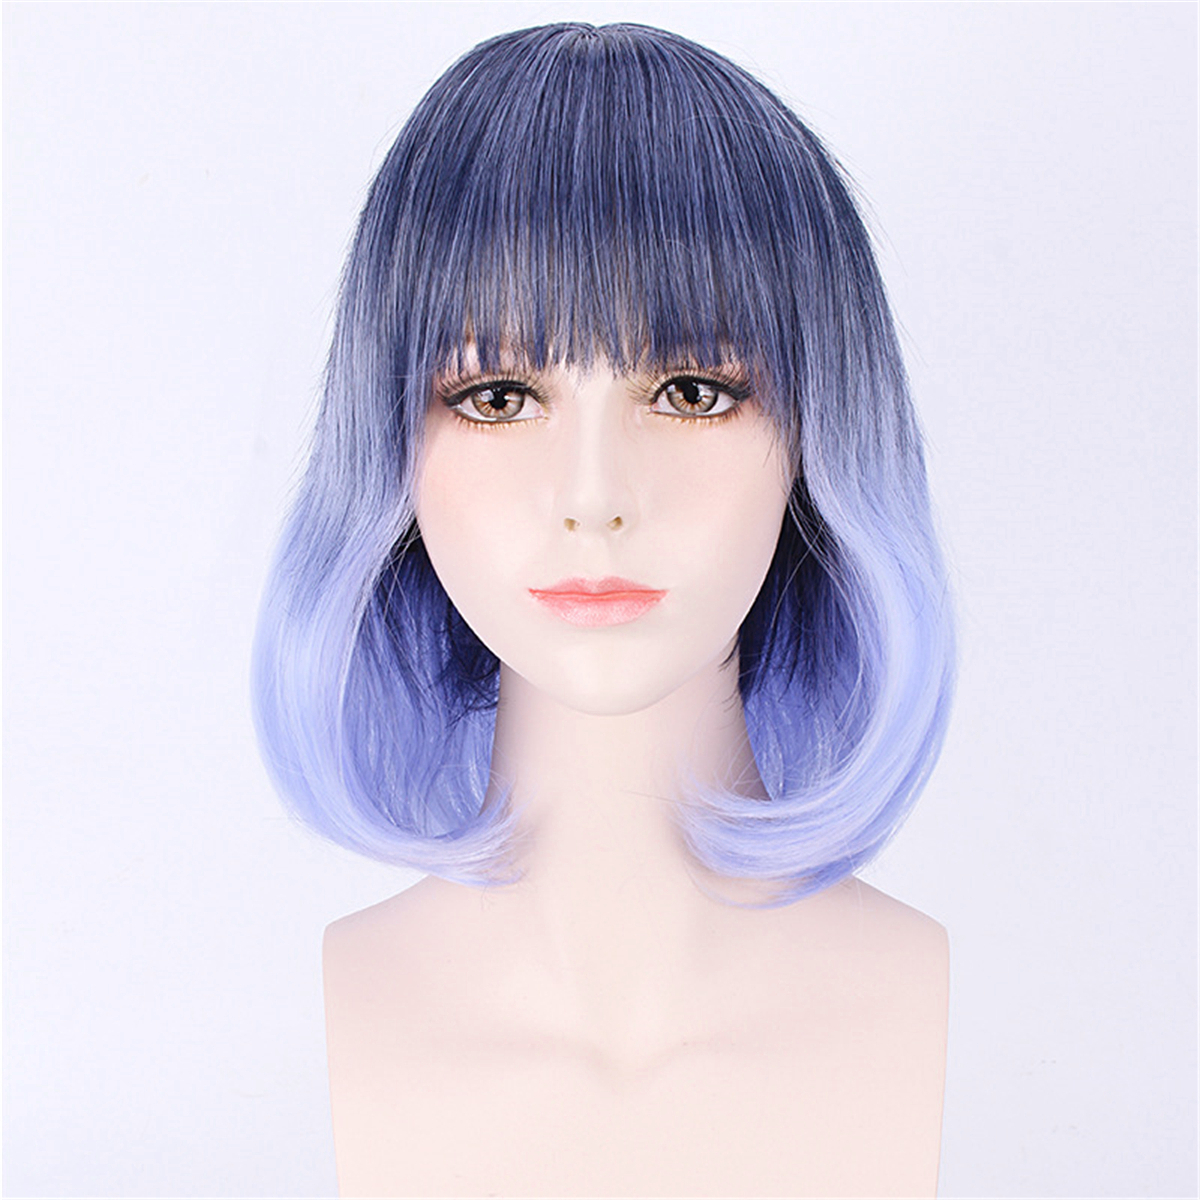 35 40cm Blue Gradient Cosplay Wig Woman Short Curly Hair